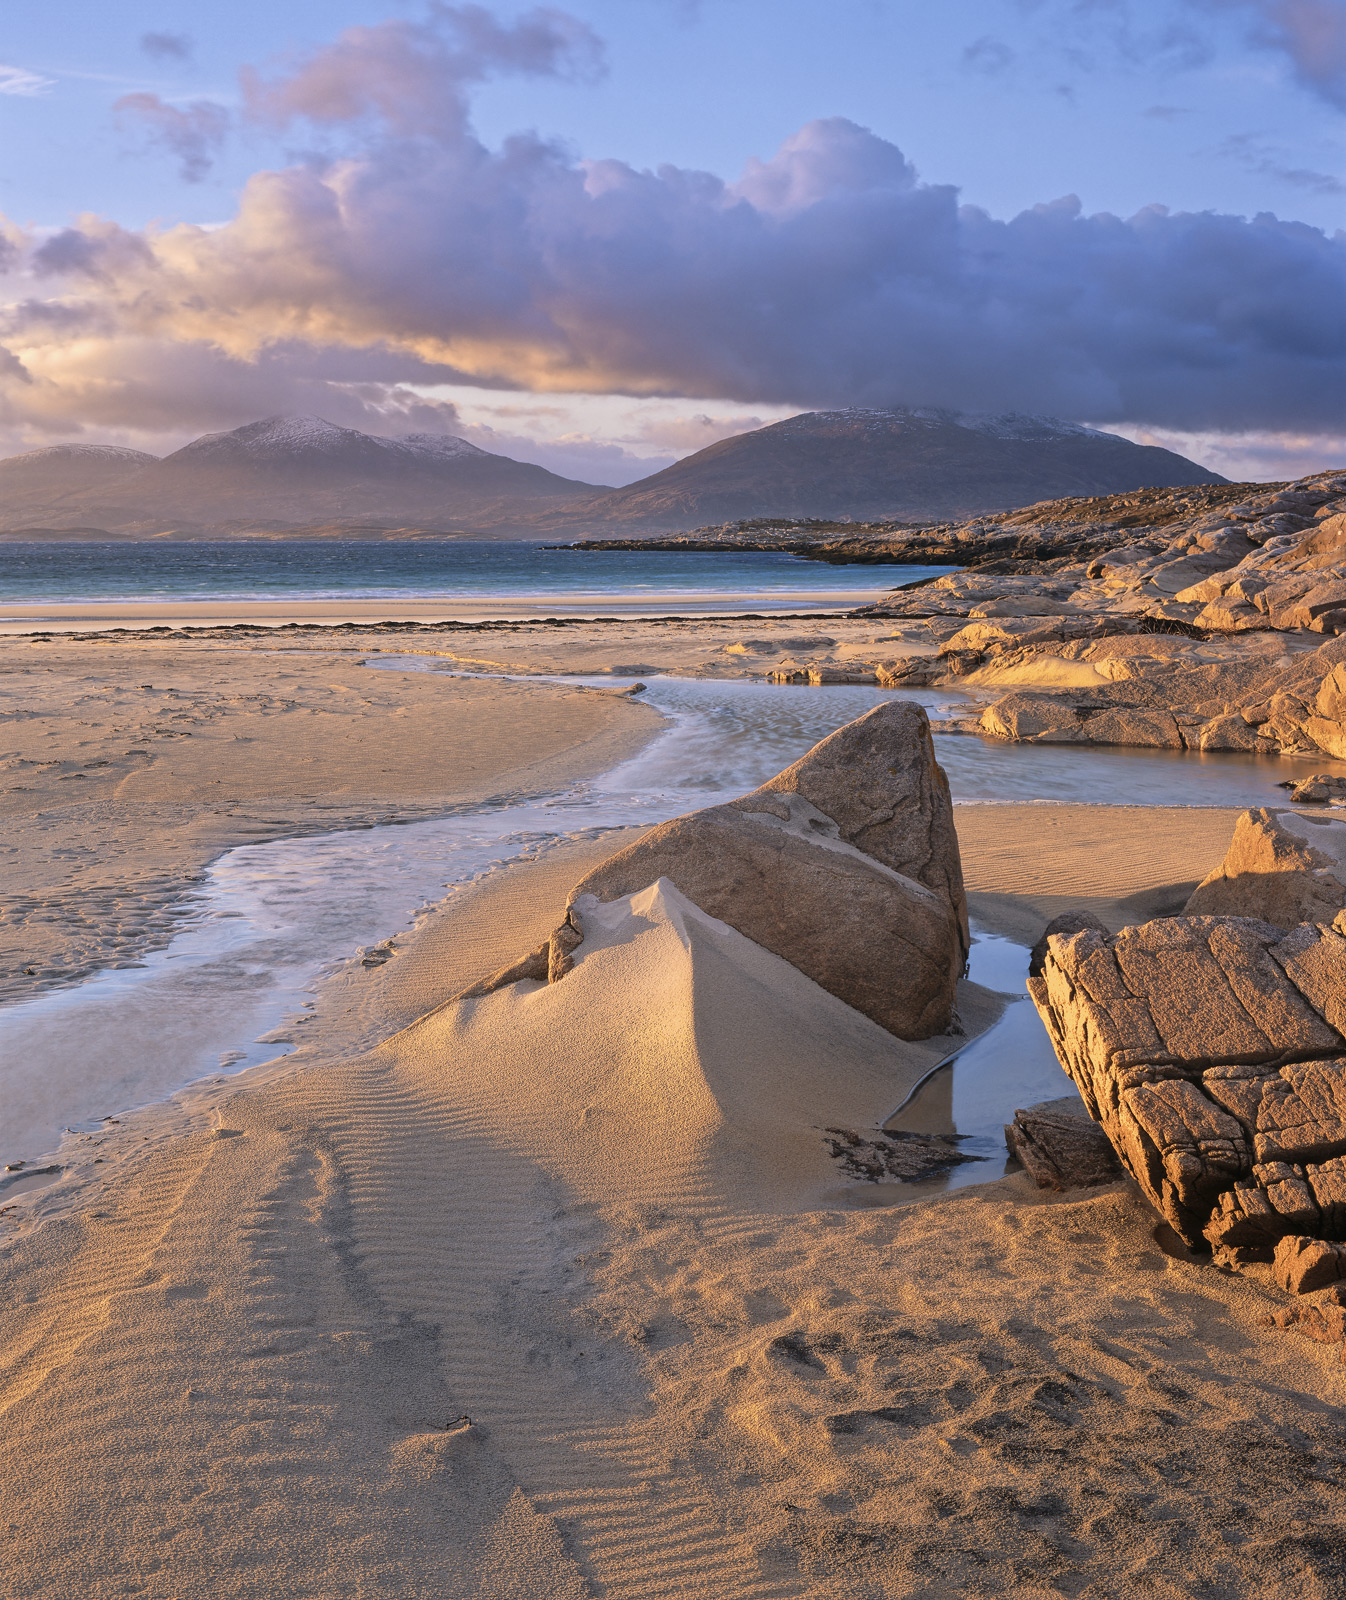 A sunset stroll out to Traigh Rosamol at low tide is often worthwhile particularly if there is any likelihood of a sunset maturing...